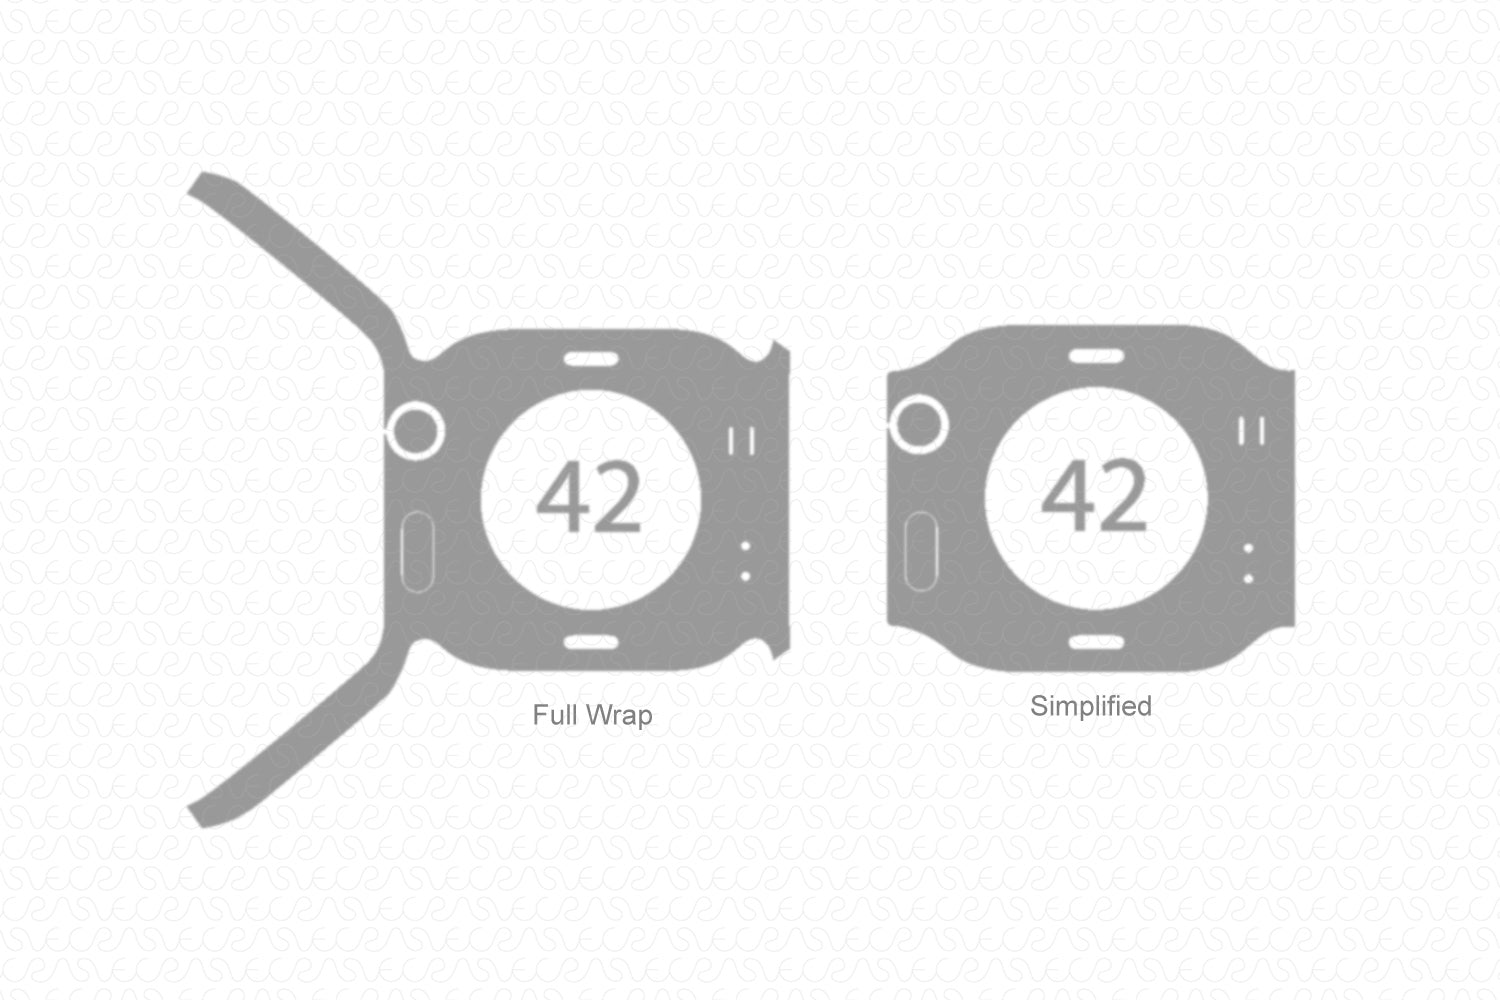 Apple Watch 42mm Series 2 (2015) Skin Cutting Template